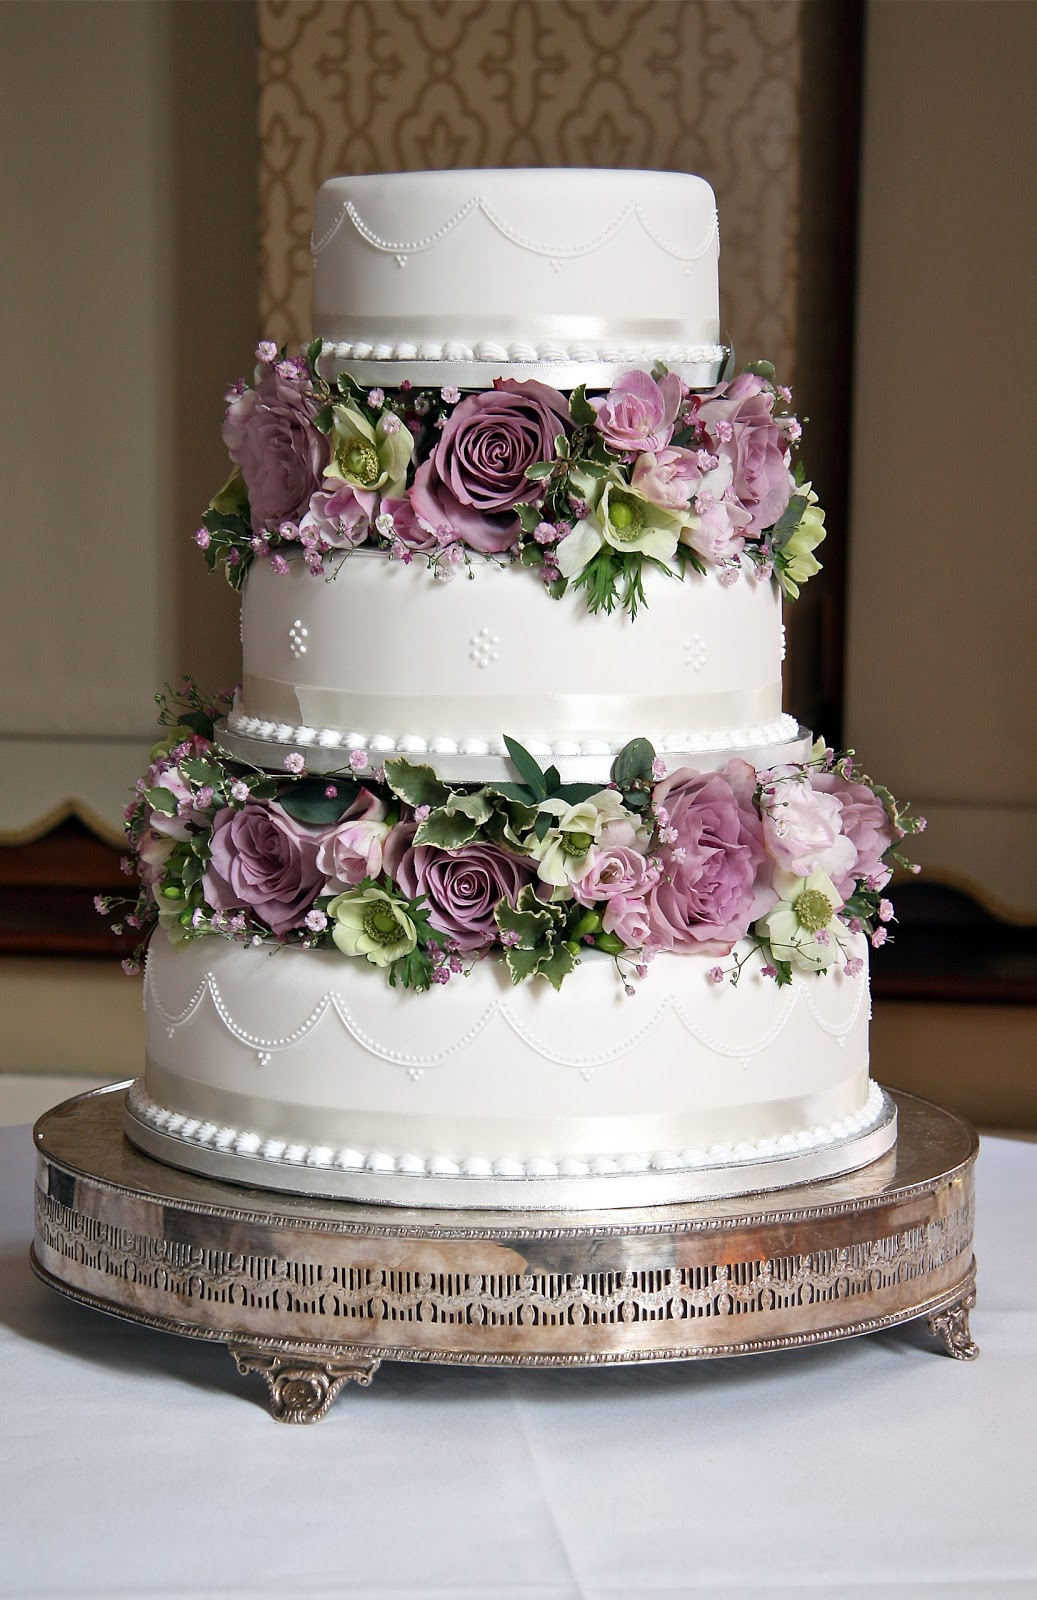 wedding cake with flowers on the side wedding flowers april 2012 26884